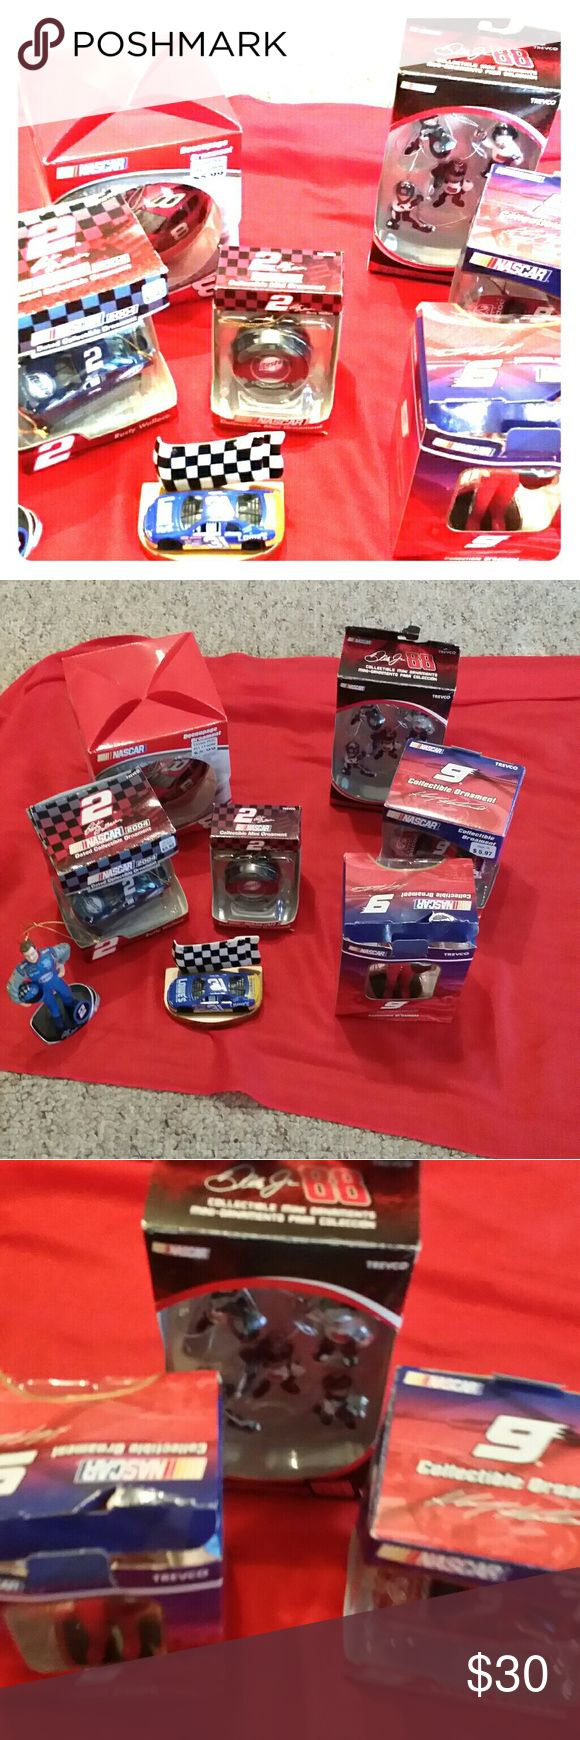 NASCAR COLLECTION.  ALL NEW IN BOX. LOT PRICE SALE All 8 items for lot price. Never taken out of box most. Dale Earnhardt,  Rusty Wallace. Etc. Most are ornaments Nascar Other